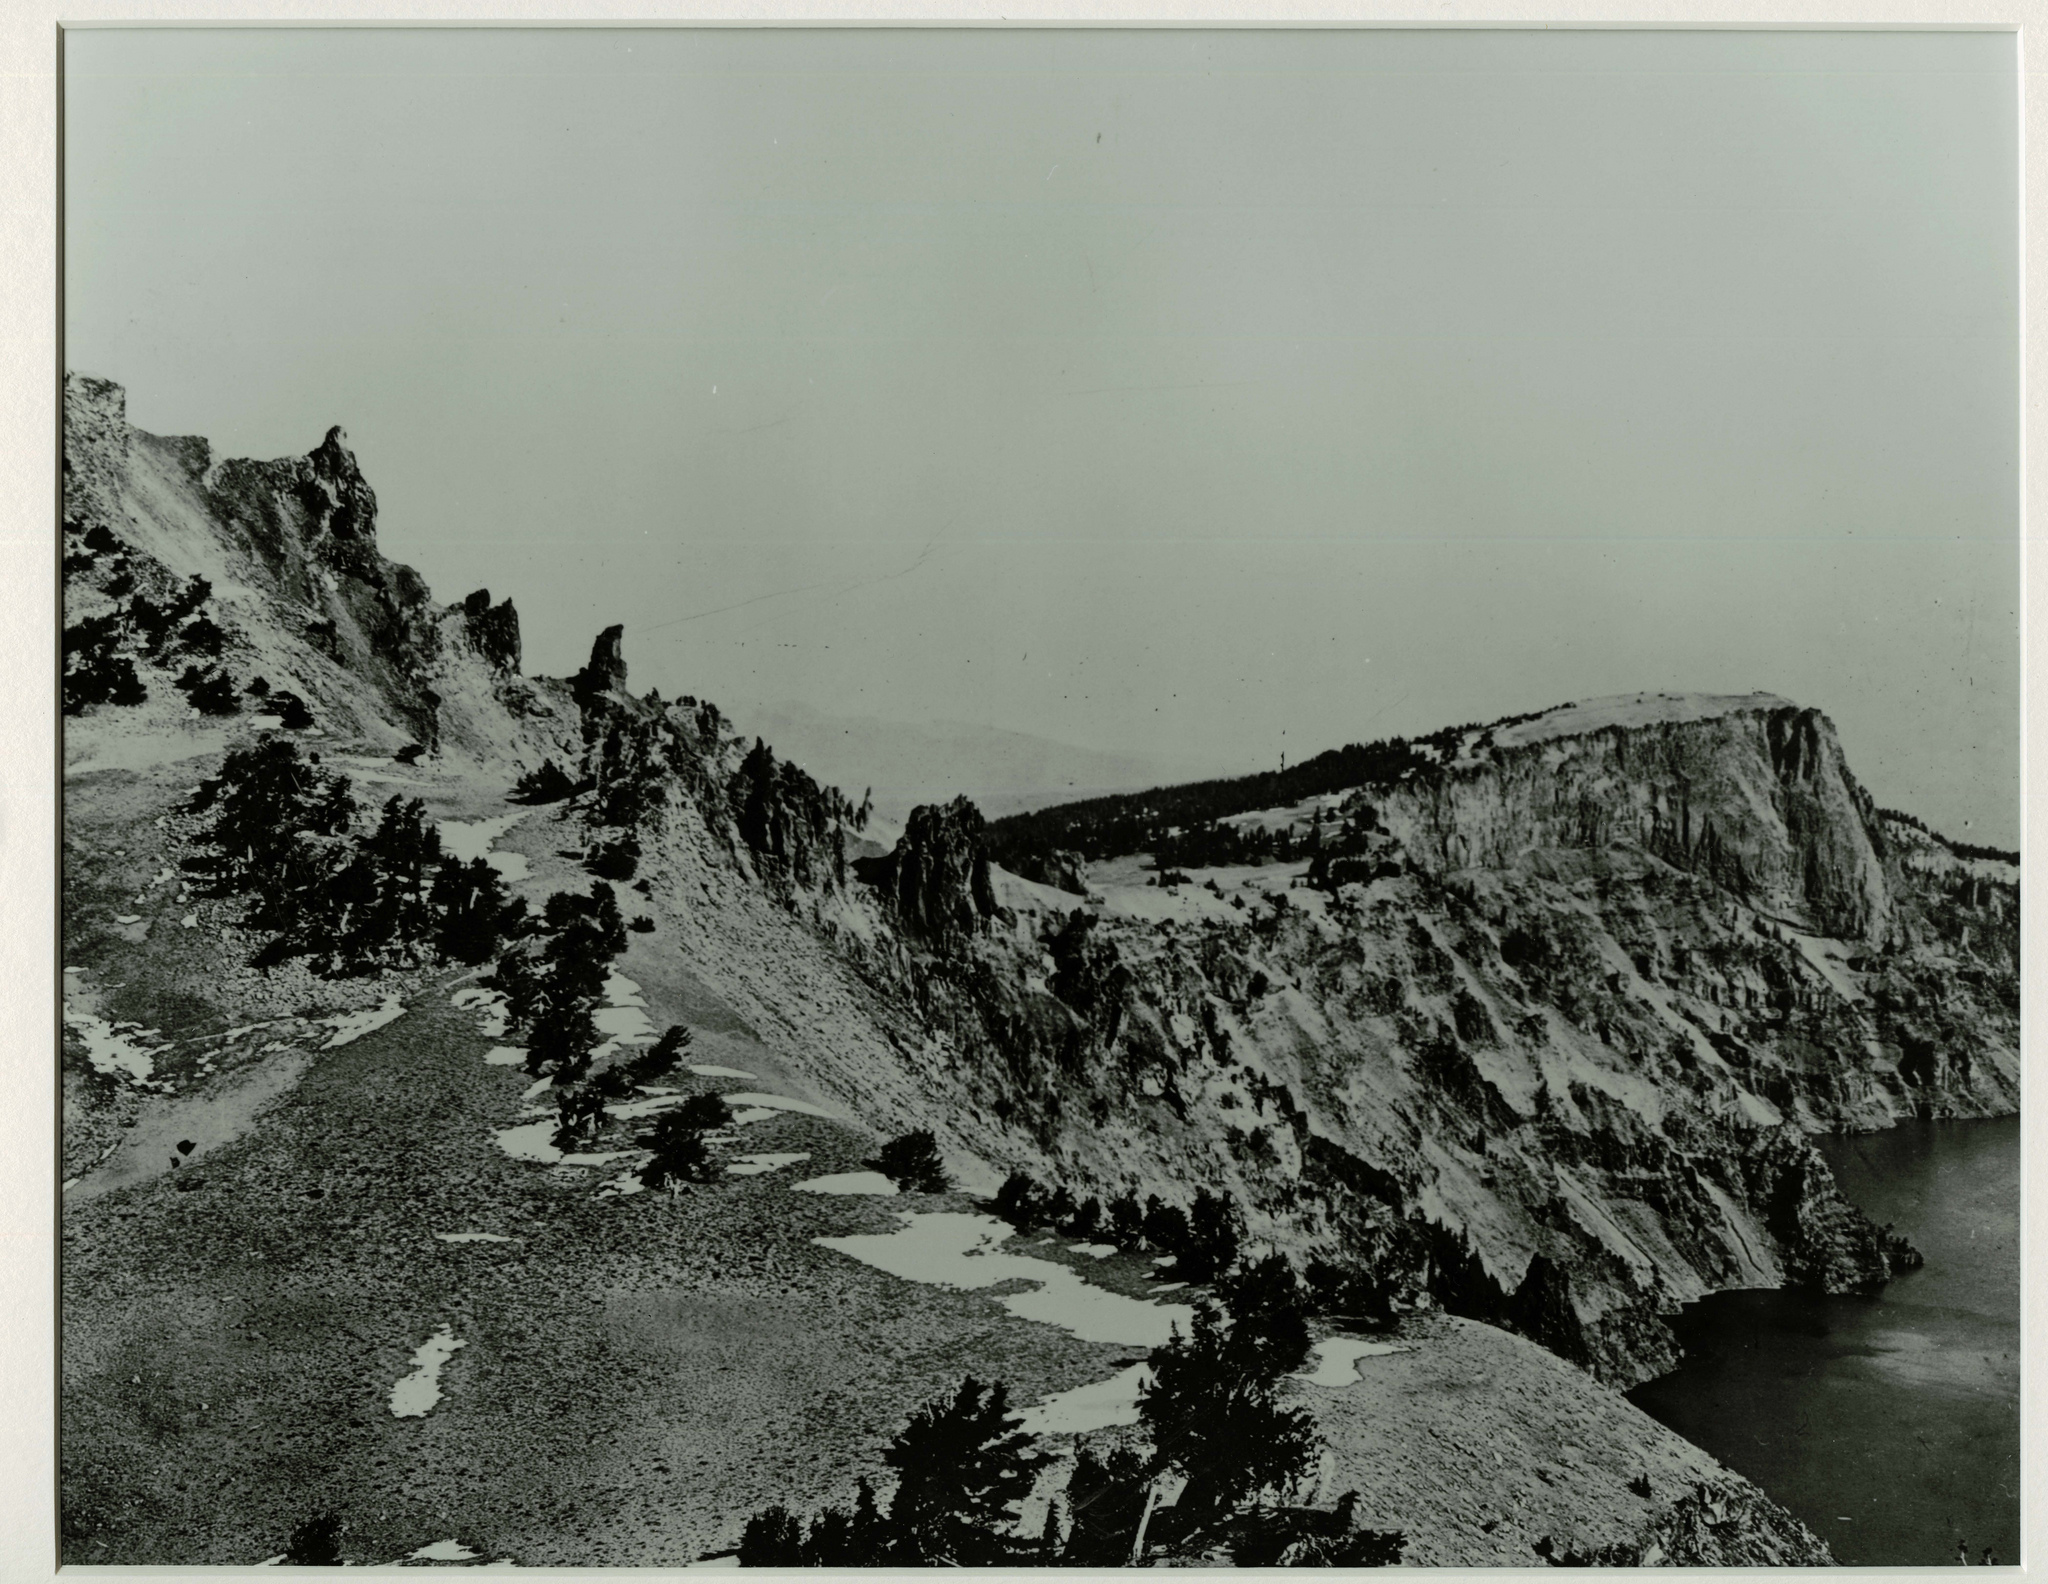 Watchman Overlook and Llao Rock from the Watchman. Photographed by J.S. Diller in the 1890s or 1901 during the USGS survey of the Crater Lake area.   Credit: Courtesy CRLA Museum & Archive Collections